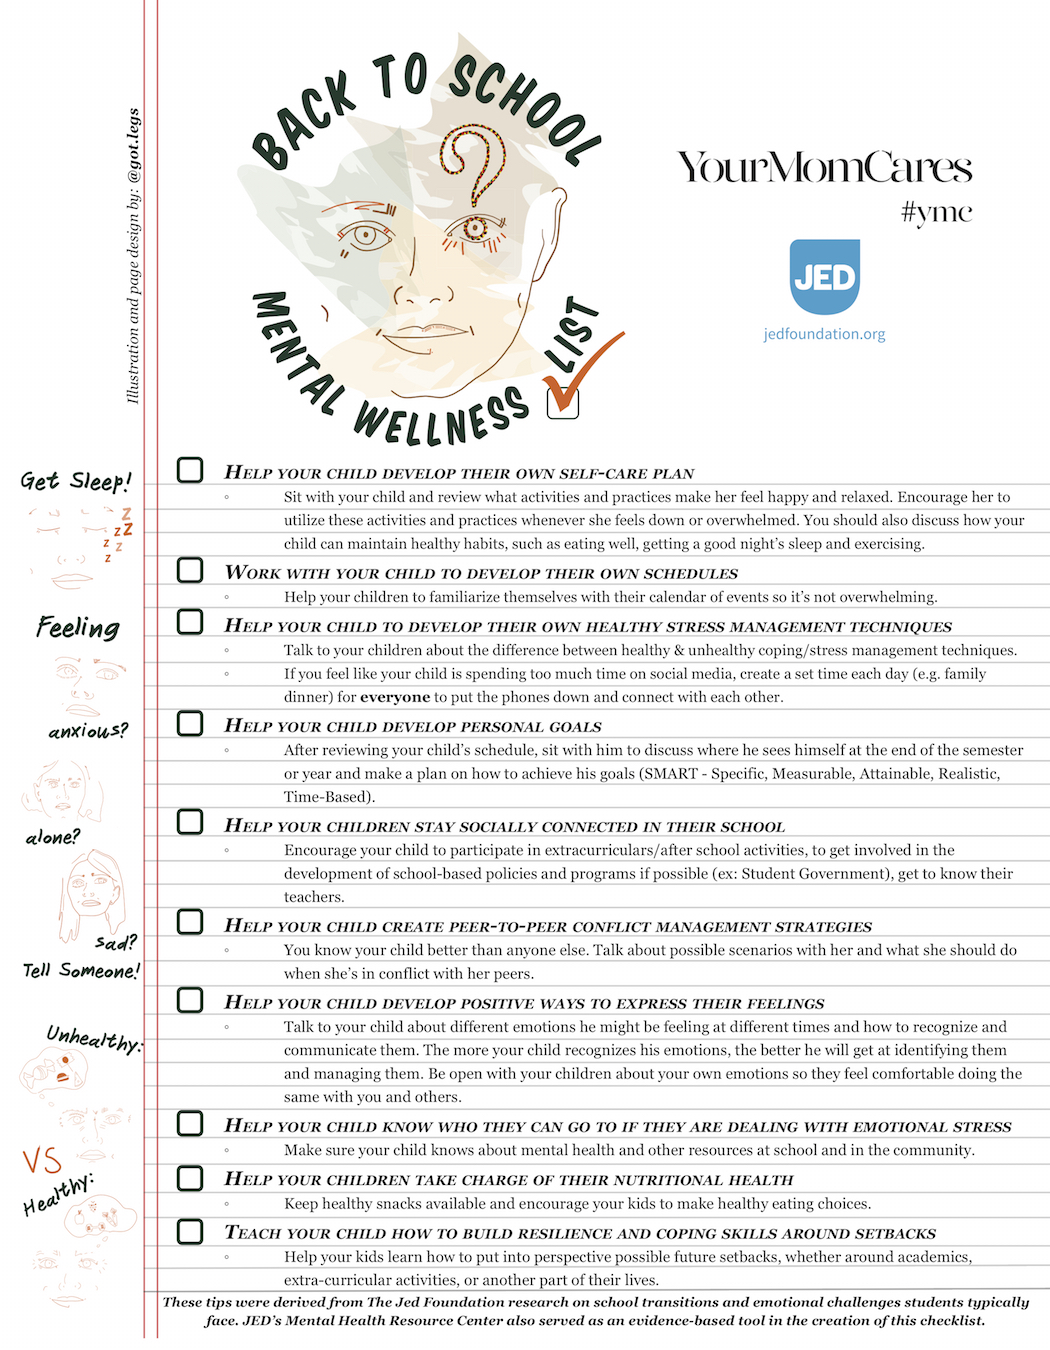 YourMomCares launch their Mental Wellness Checklist